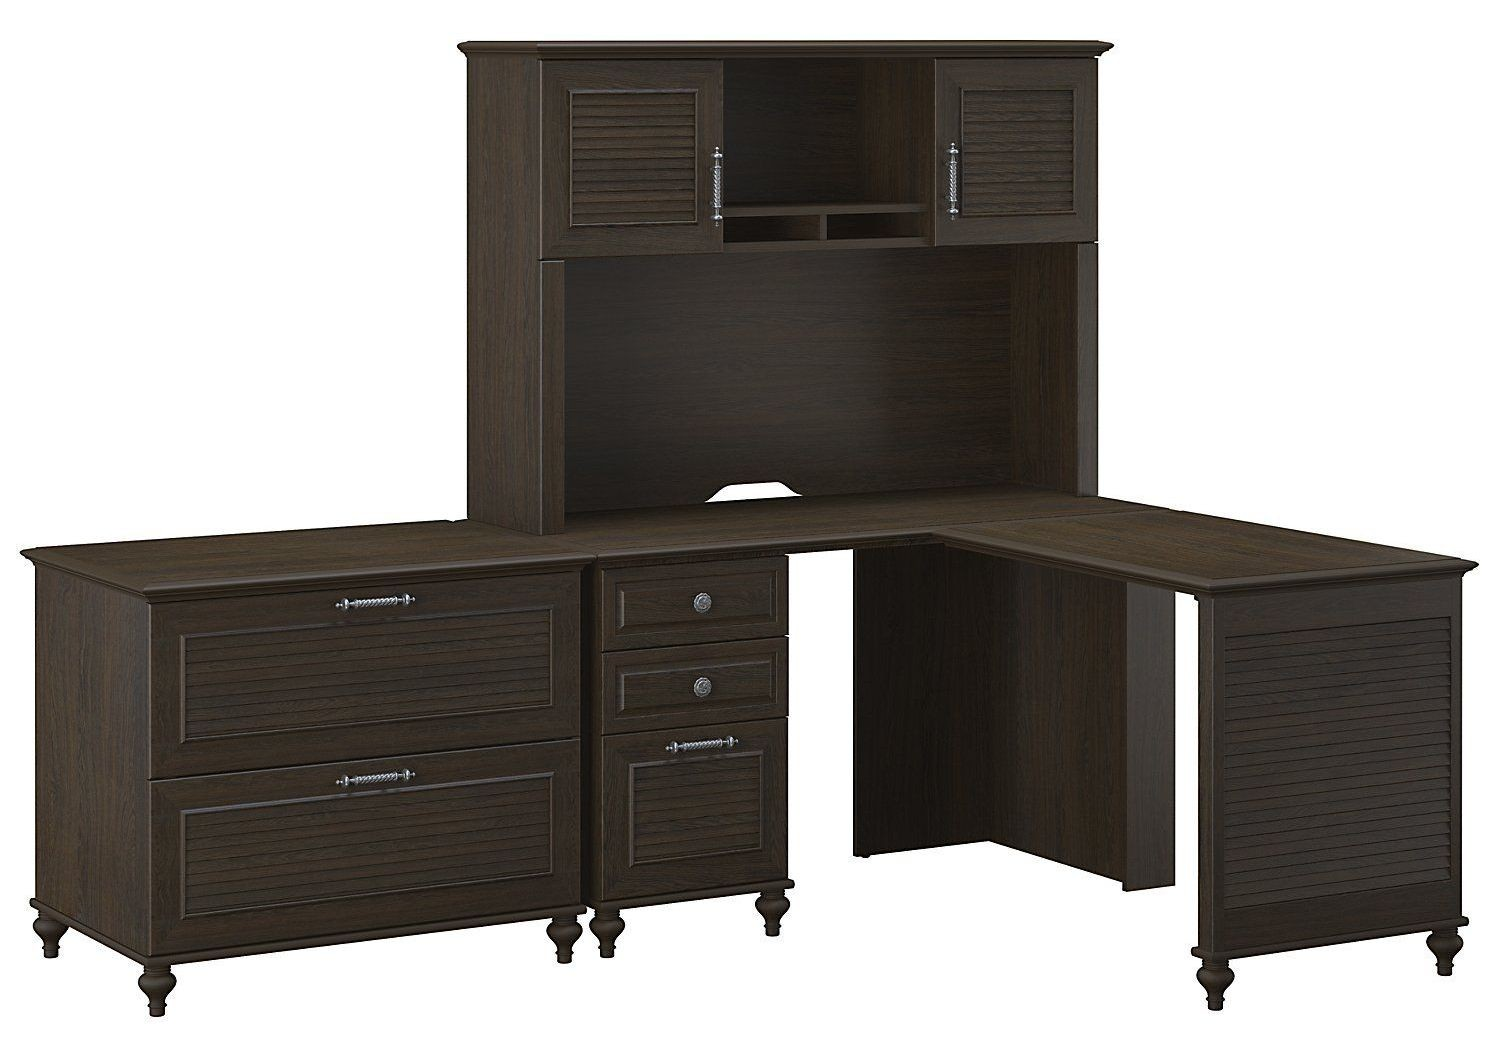 volcano dusk kona coast home office l desk with lateral file hutch from kathy ireland by bush. Black Bedroom Furniture Sets. Home Design Ideas